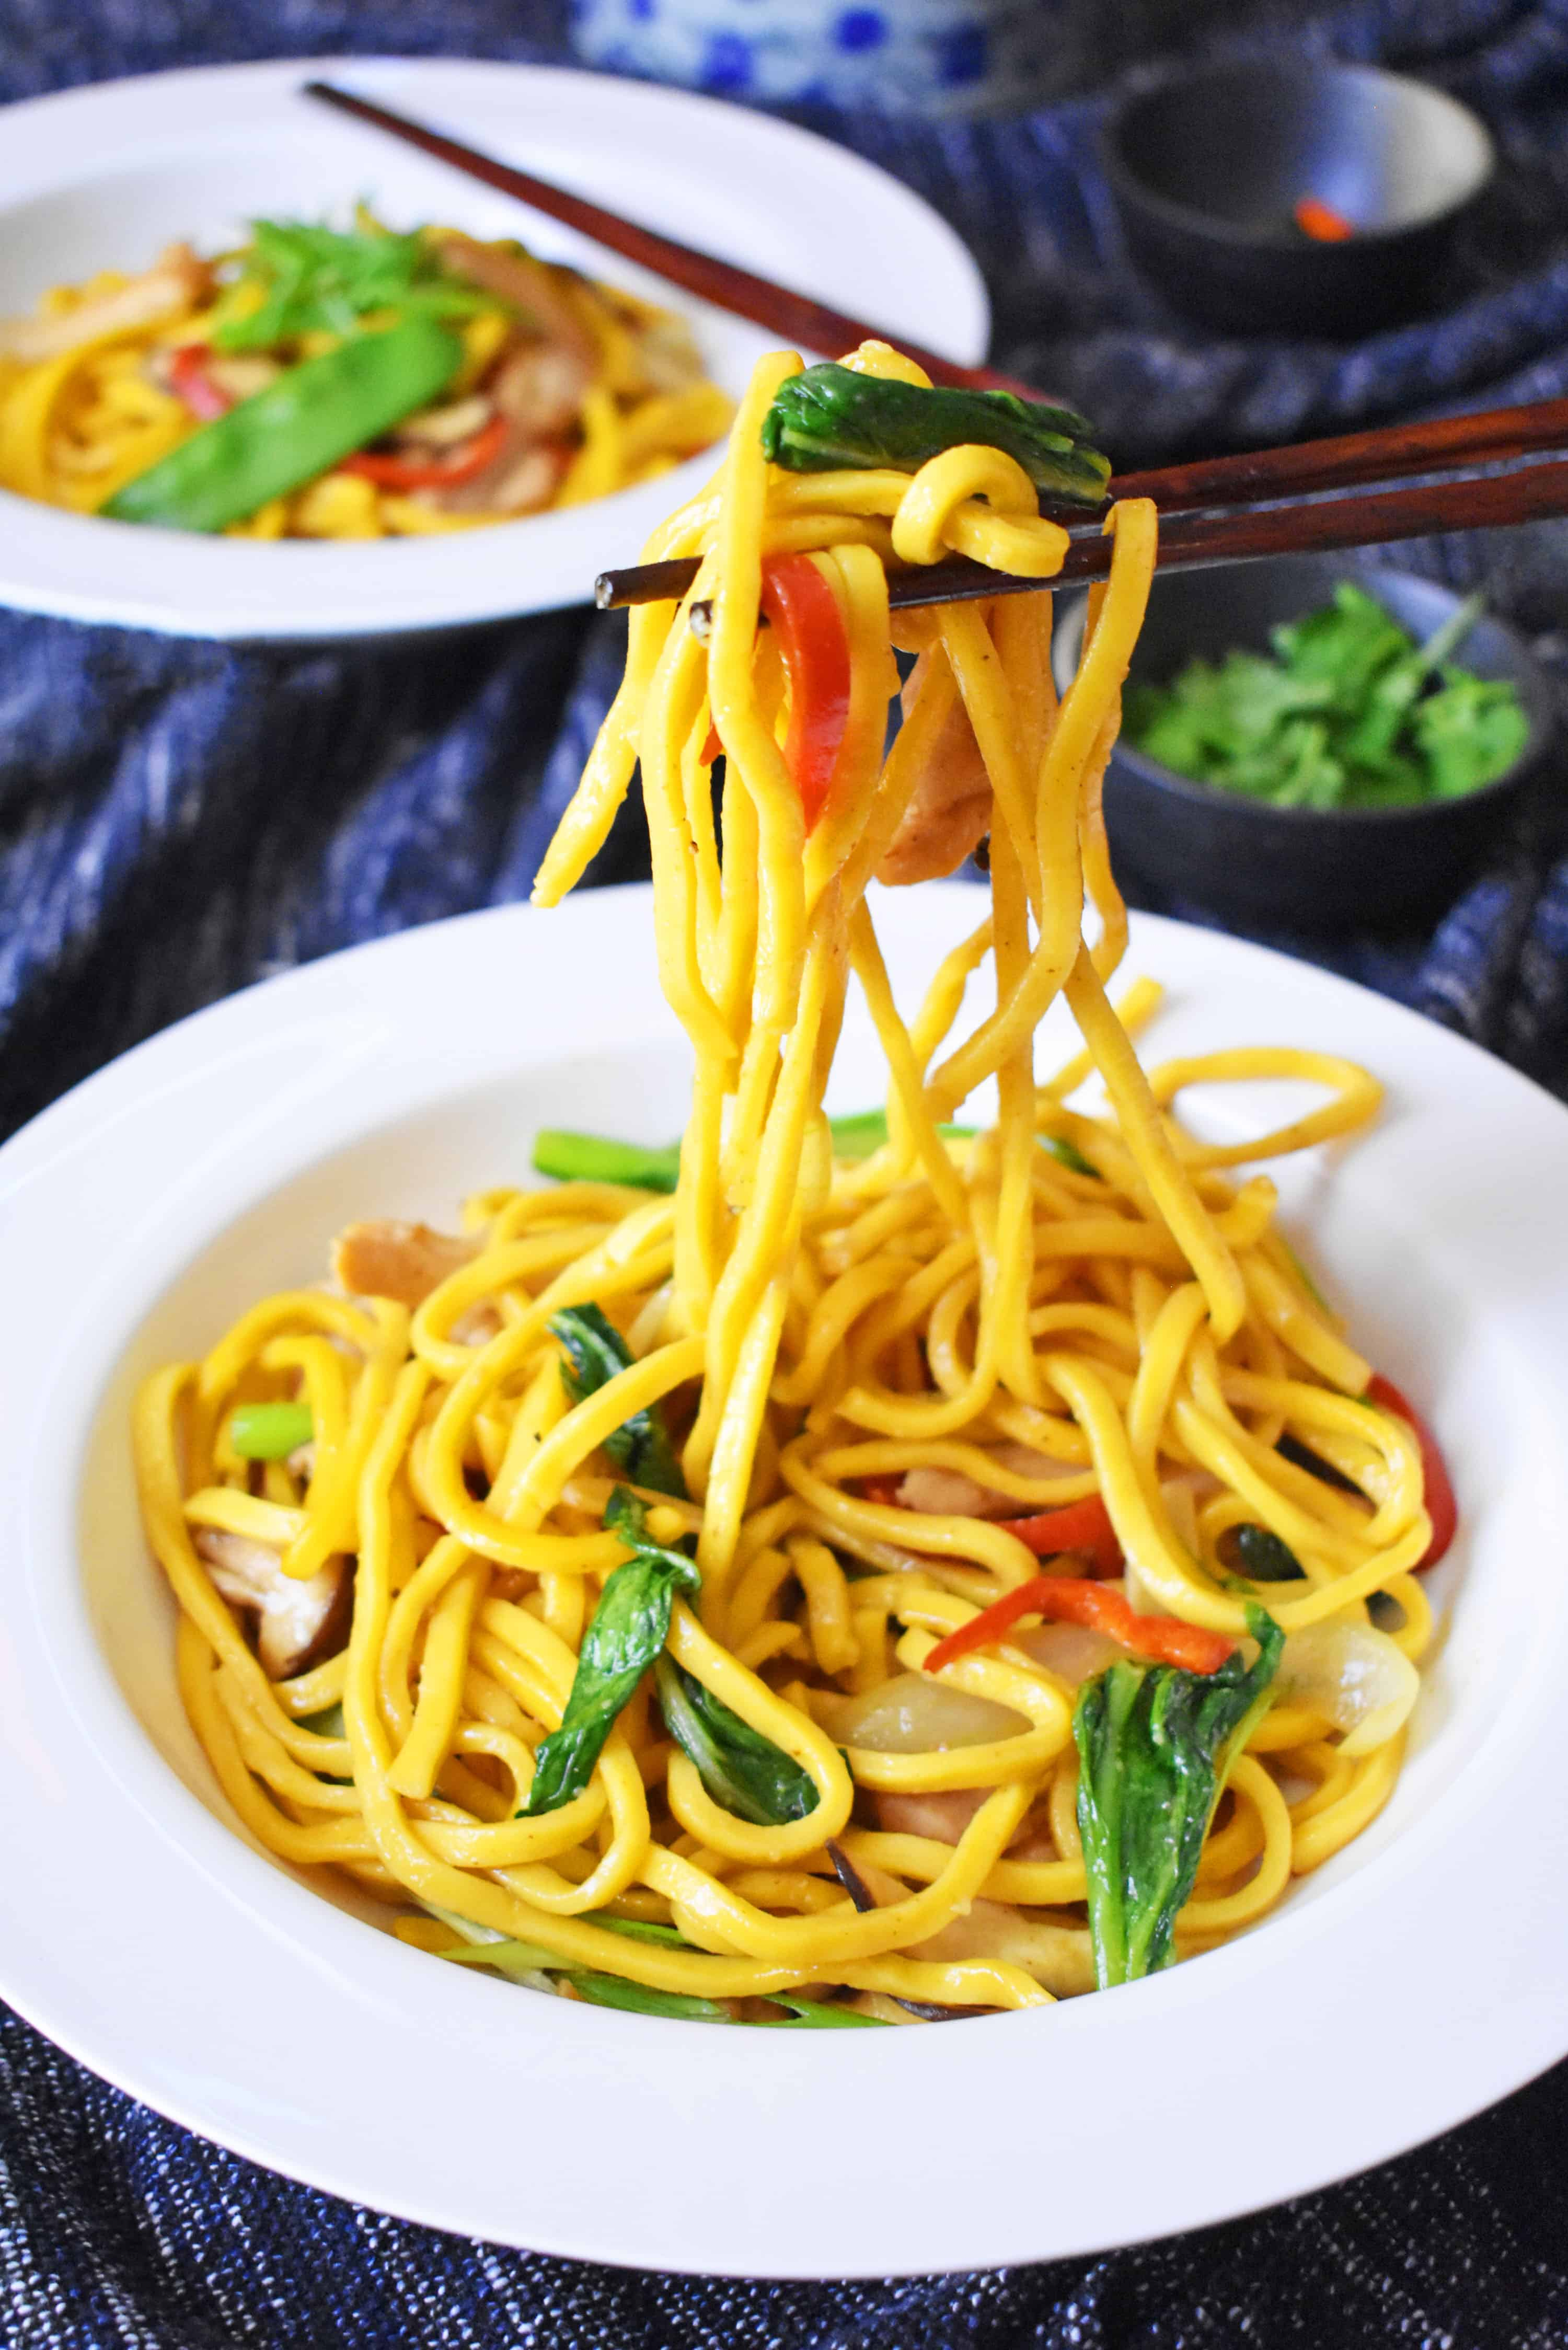 Easy Chicken and Hokkien Noodle Stir Fry - Scruff & Steph